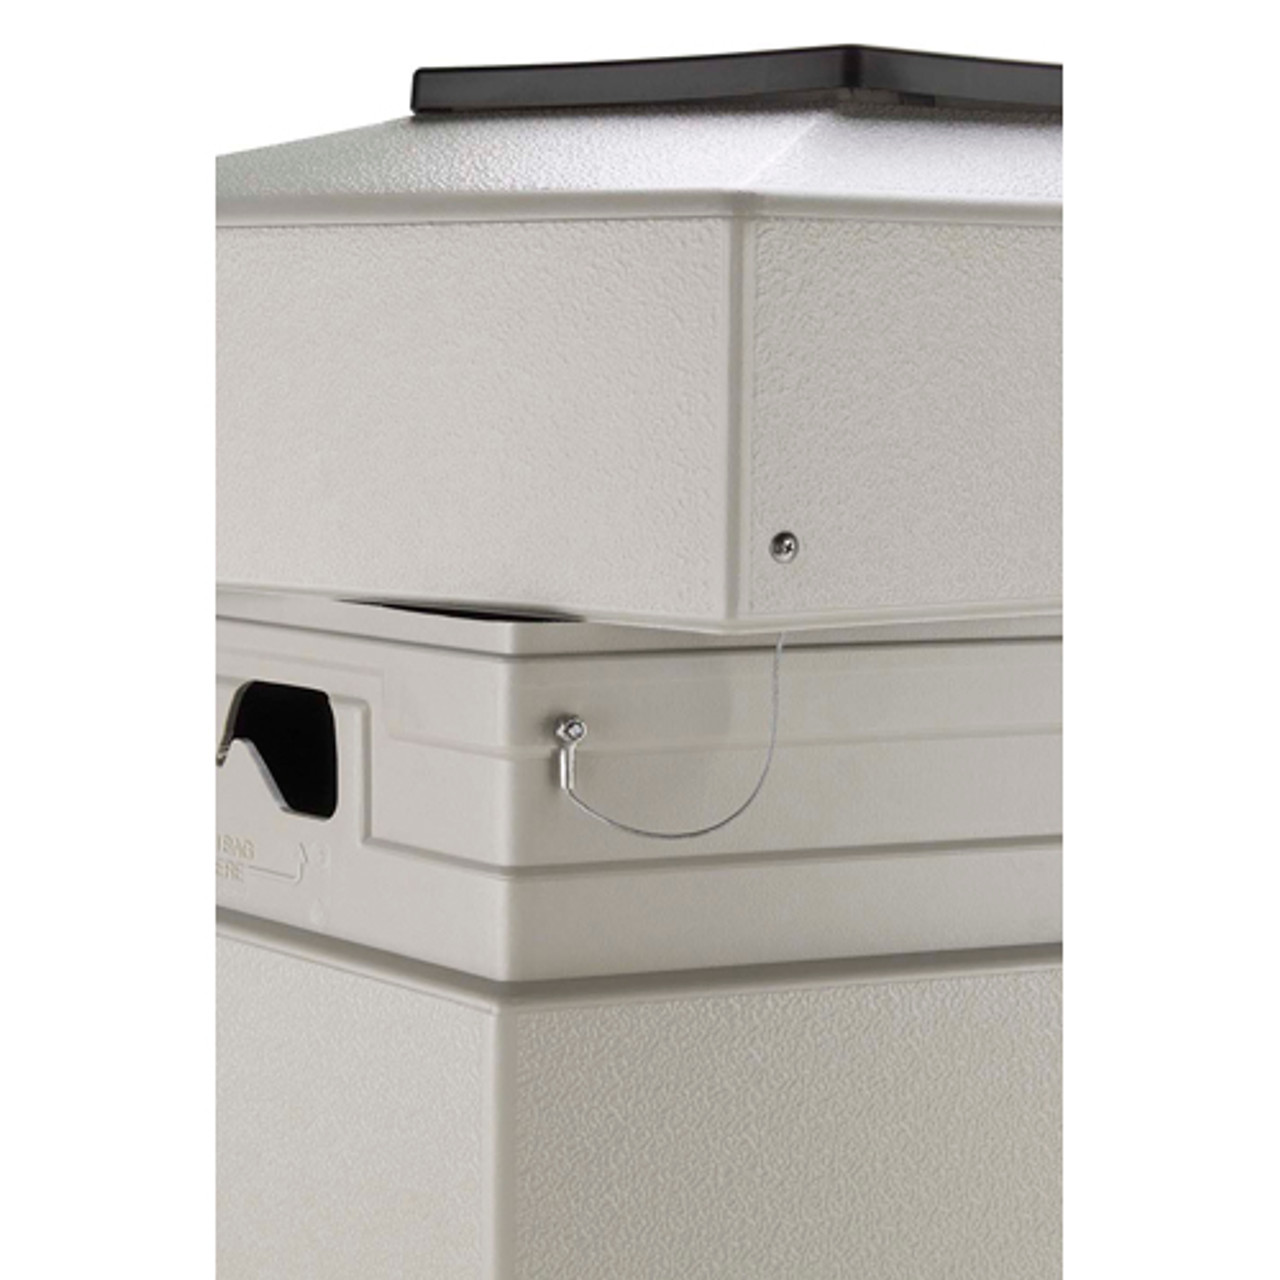 Optional 7 Inch Lid to Trash Can Base Cable